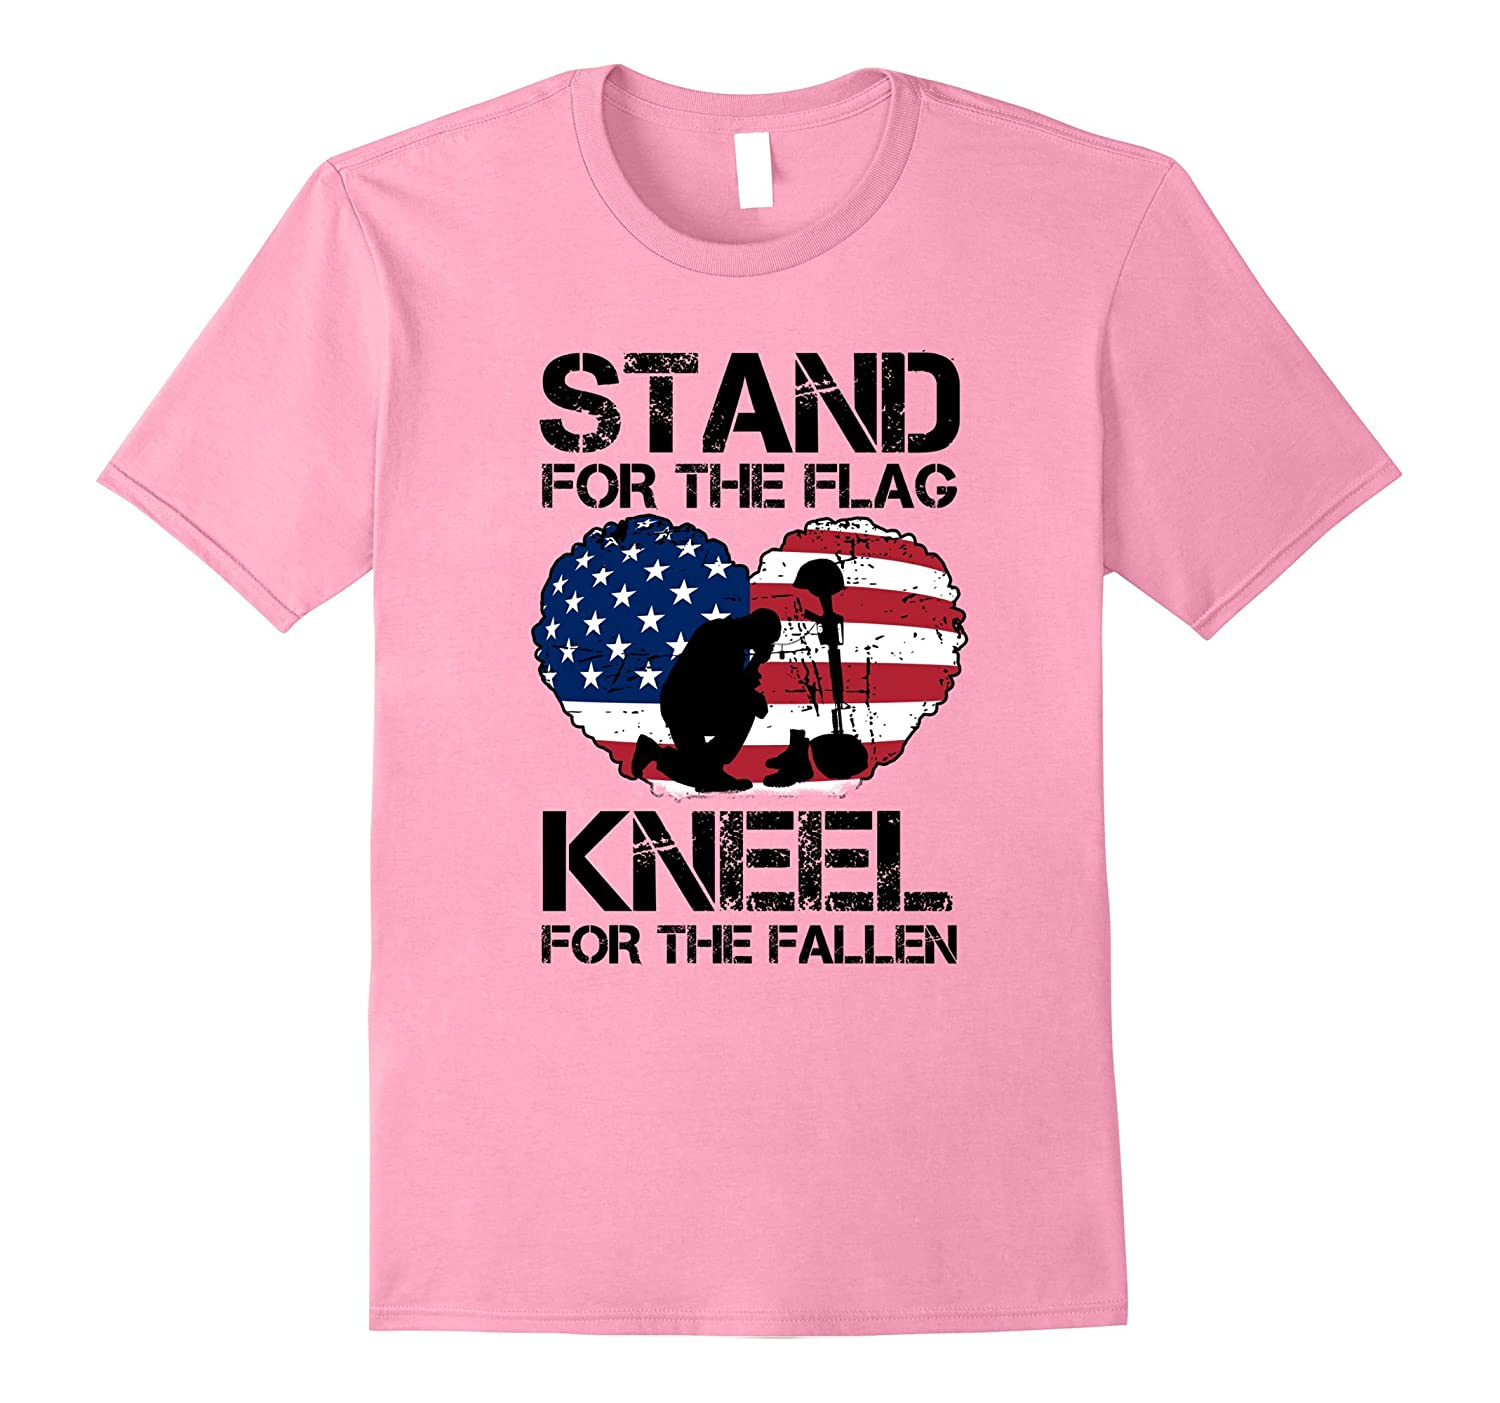 46904176cab2c Stand For the Flag, Kneel For The Fallen! Patriotic T-Shirt-T-Shirt